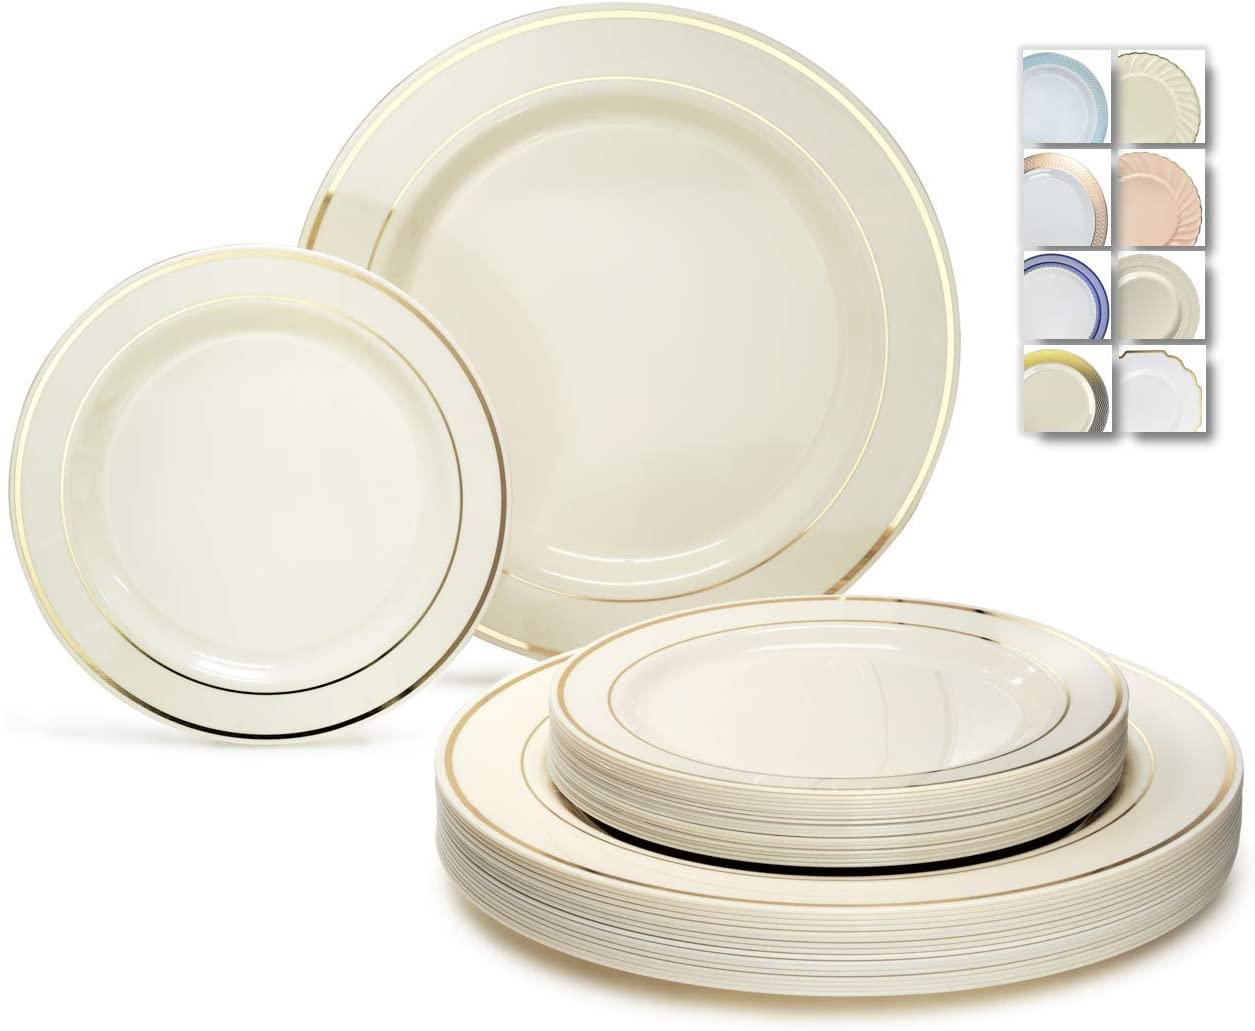 OCCASIONS 240 Plates Pack,(120 Guests) Heavyweight Wedding Party Disposable Plastic Plates Set -120 x 10.5'' Dinner + 120 x 7.5'' Salad/Dessert (Ivory w/Gold Rim) 61kdebqL8hL